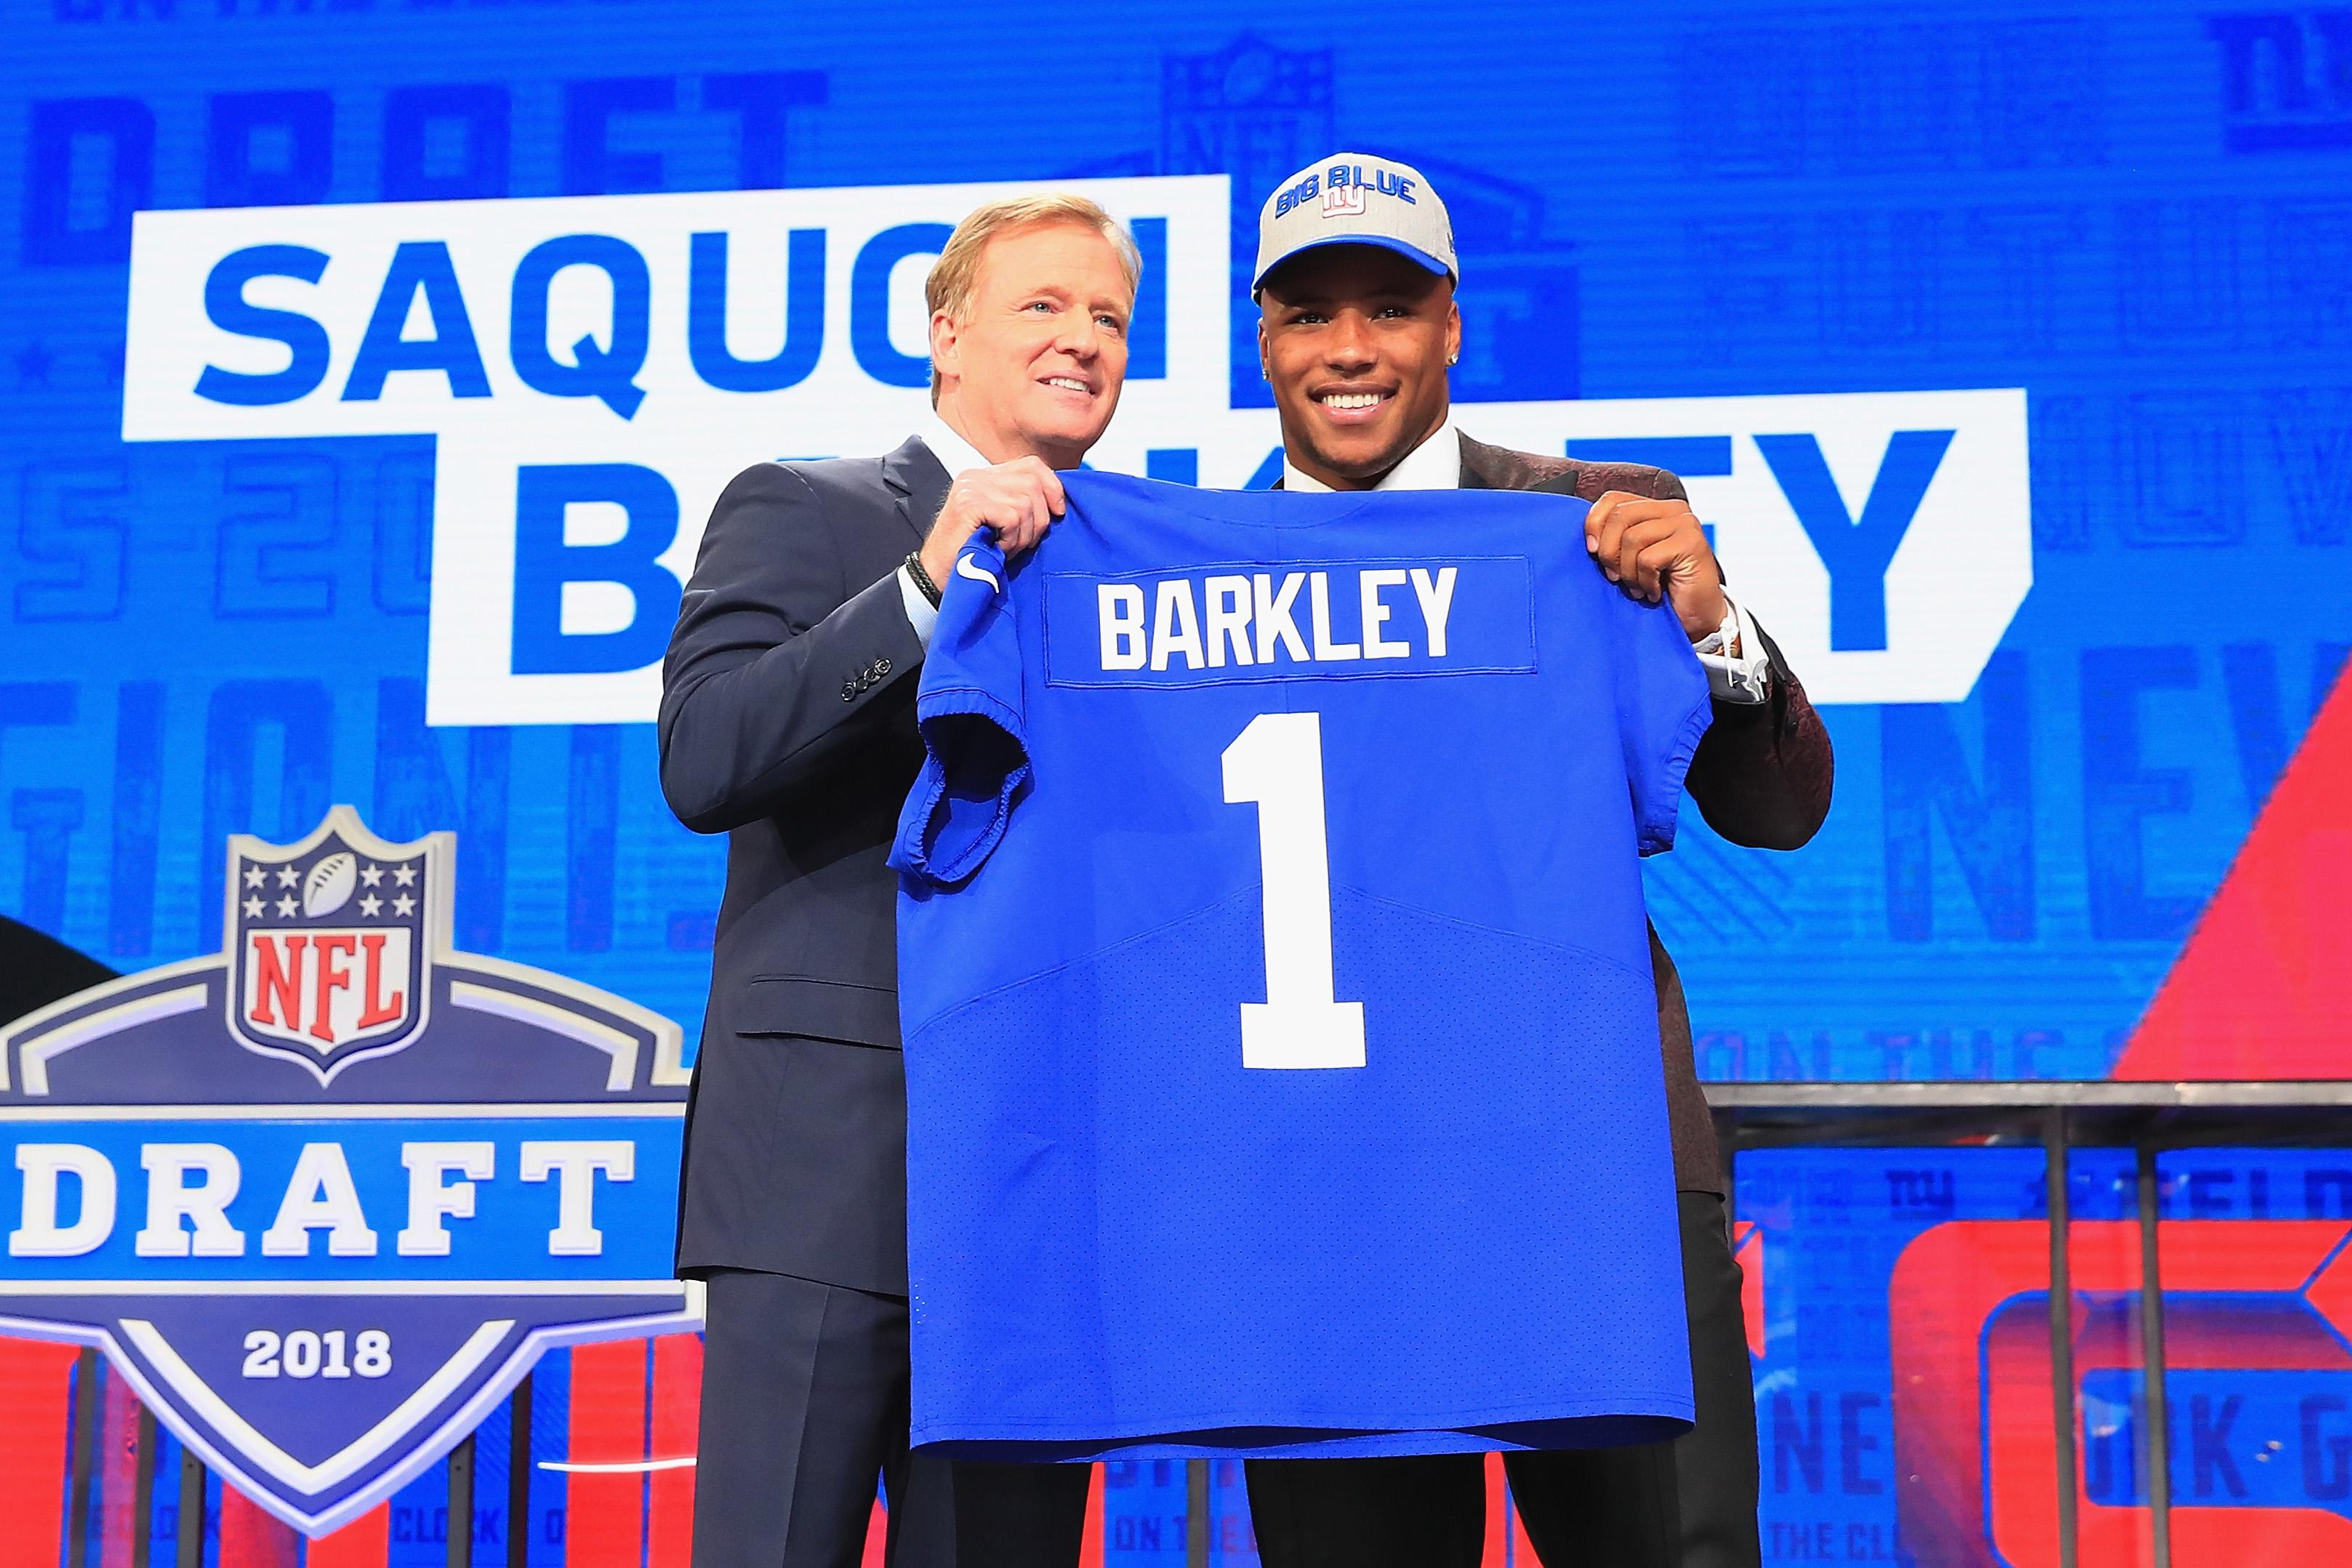 Saquon Barkley reportedly sold more jerseys than any rookie in NFL history on draft night